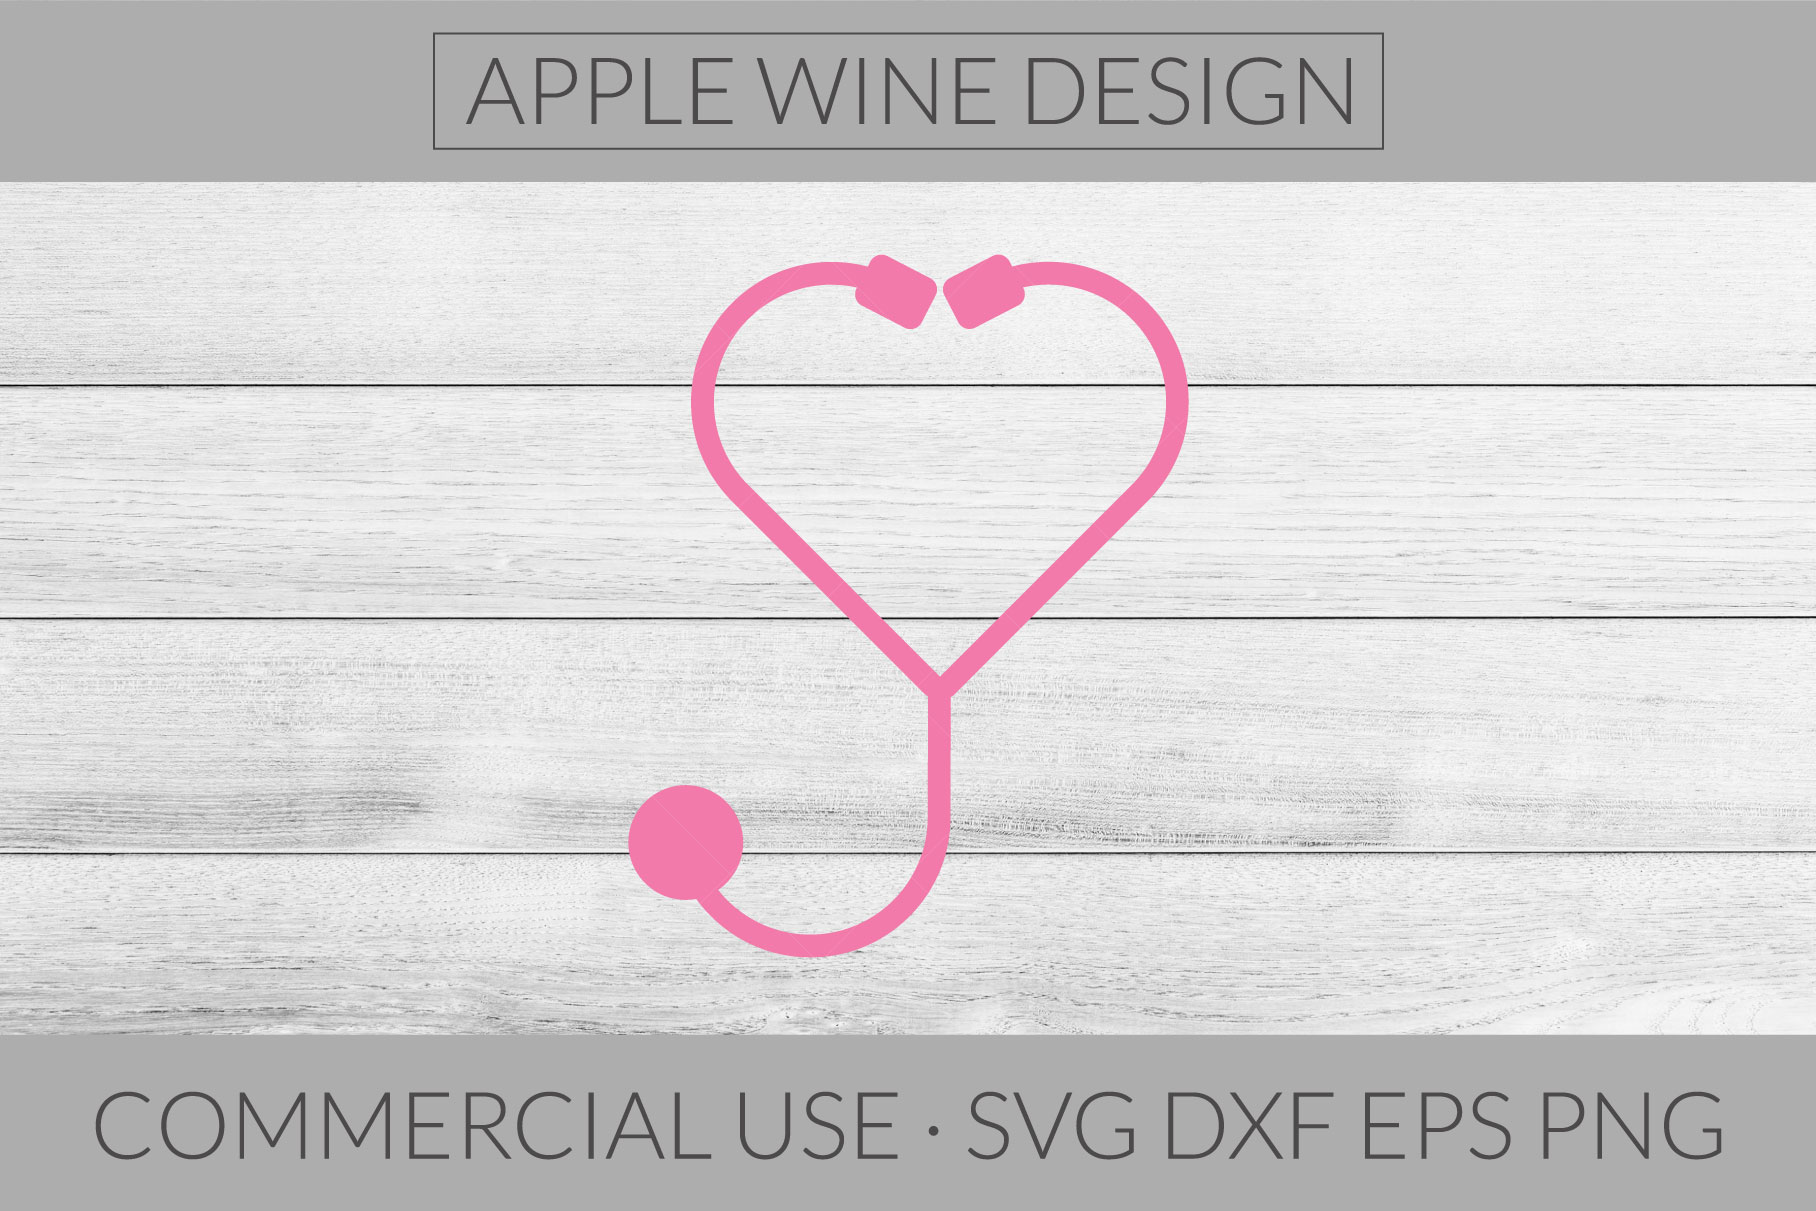 Stethoscope SVG DXF PNG EPS Cutting File example image 1